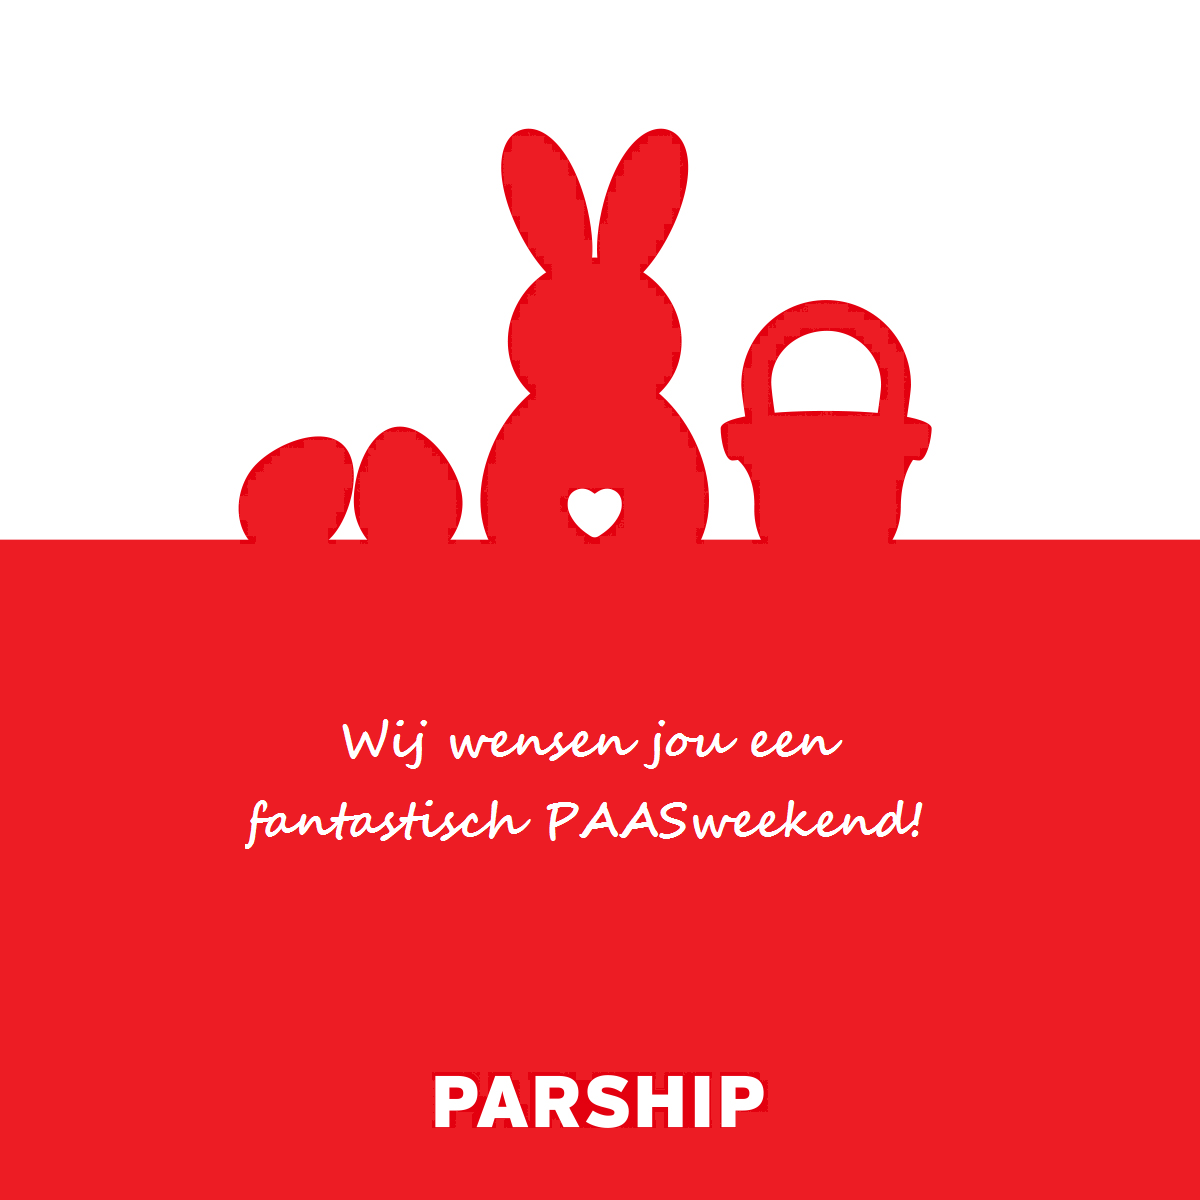 www.parship.de login